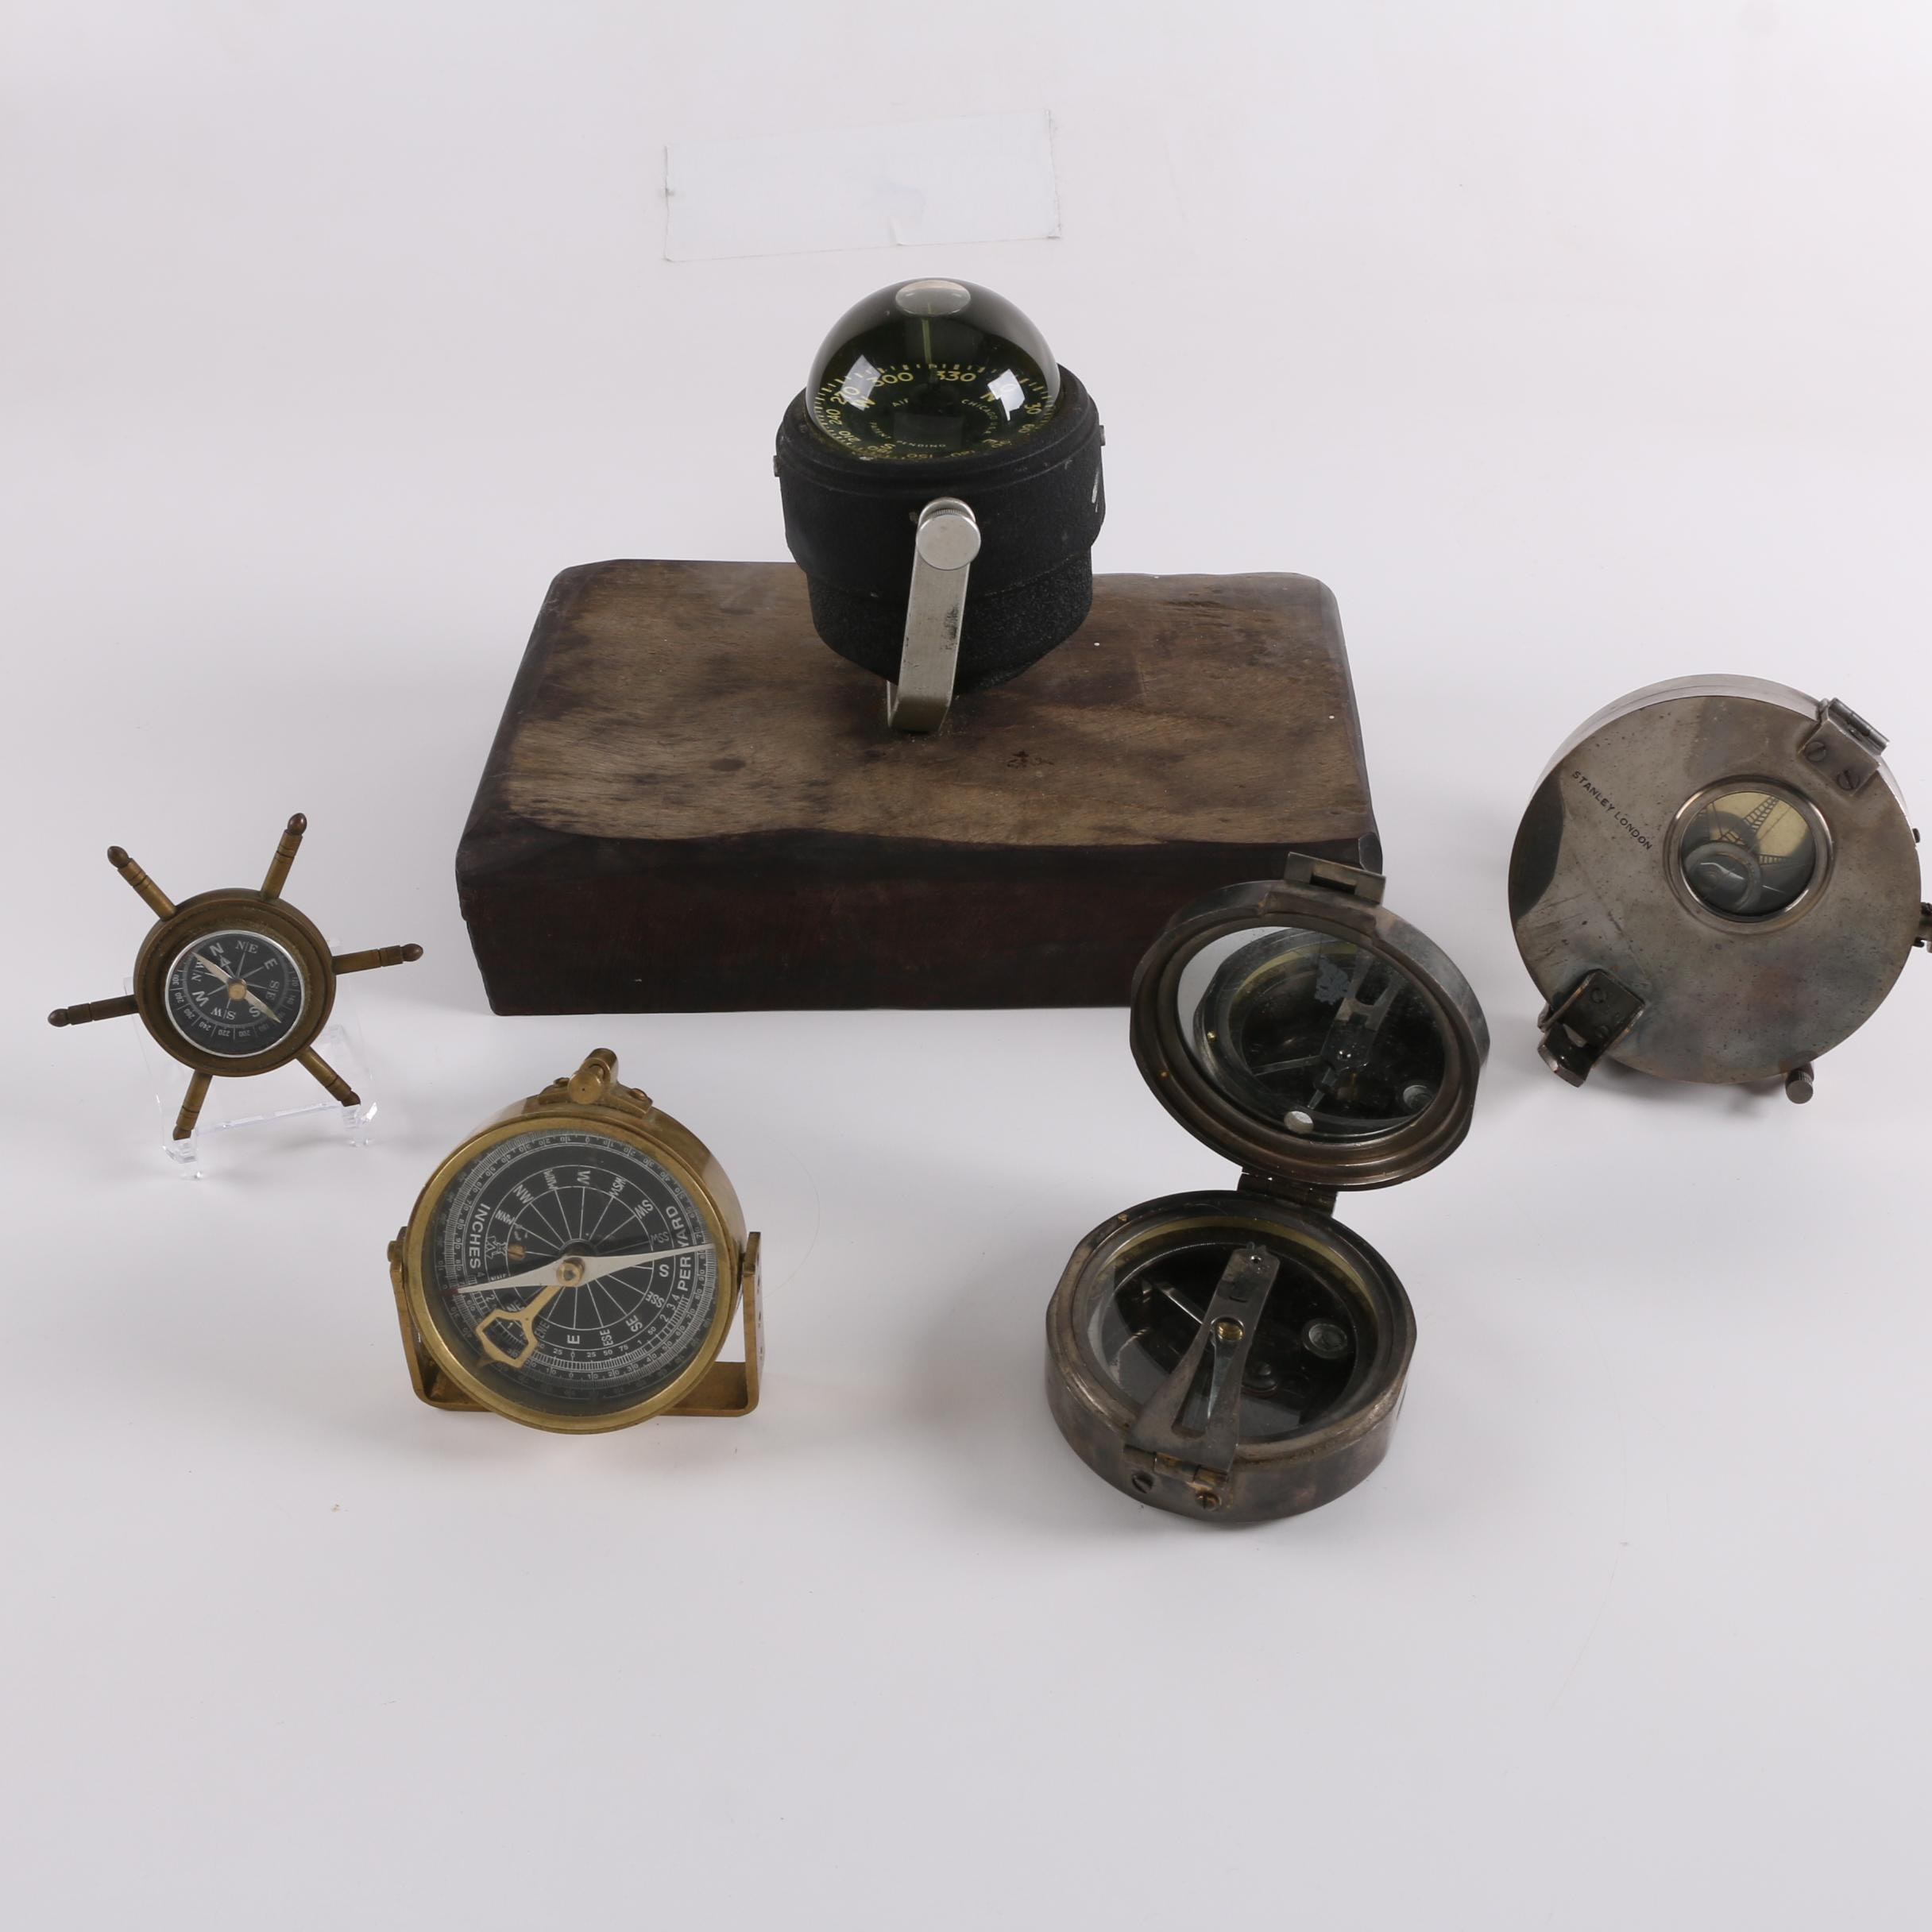 Stanley London, Airguide and Other Maritime and Aeronautical Compasses